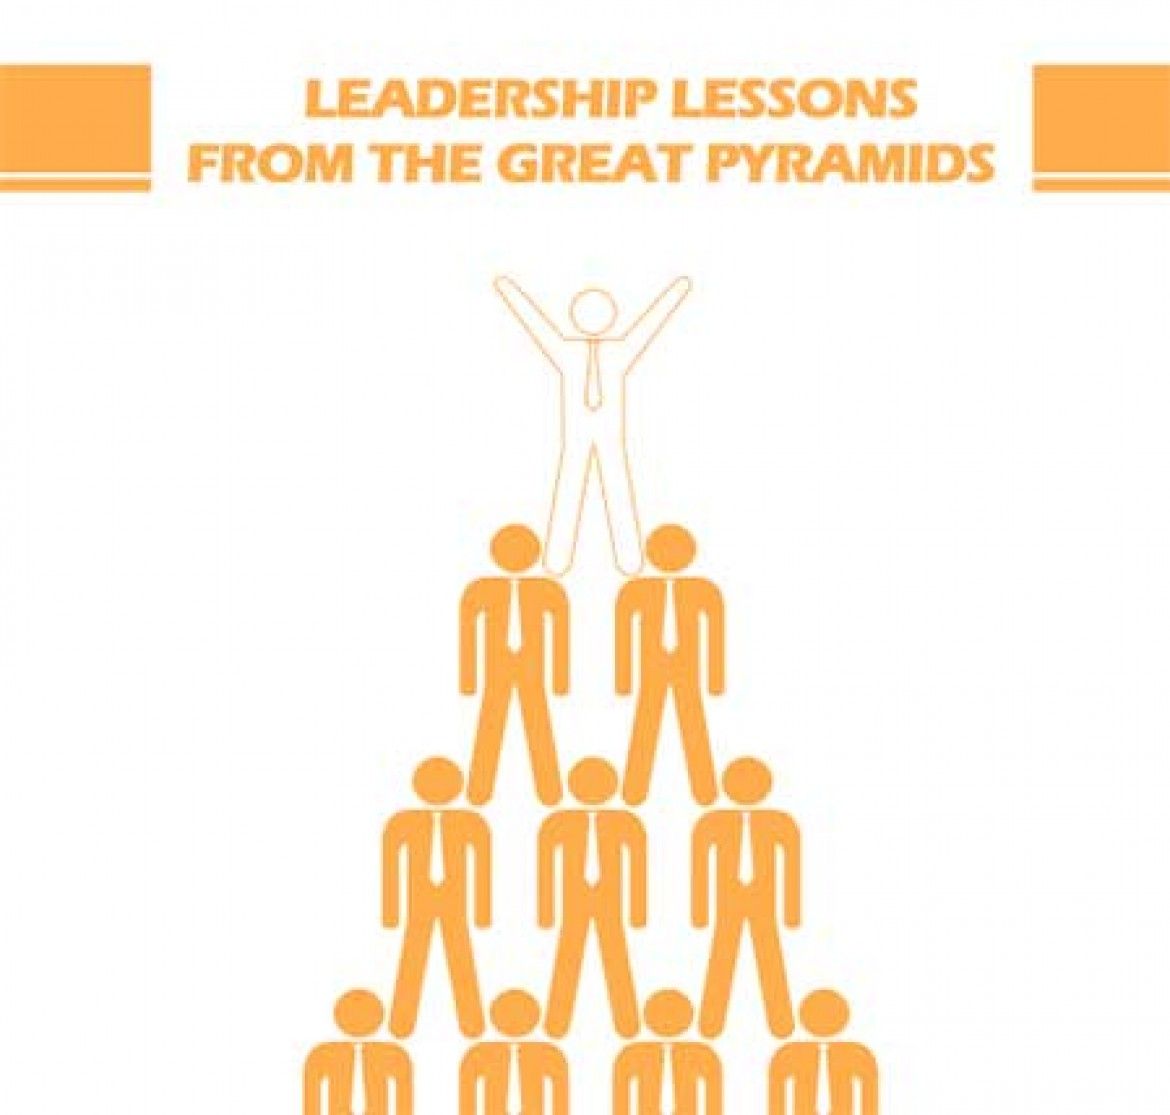 Arthur Carmazzi – New Leadership Book Part 1